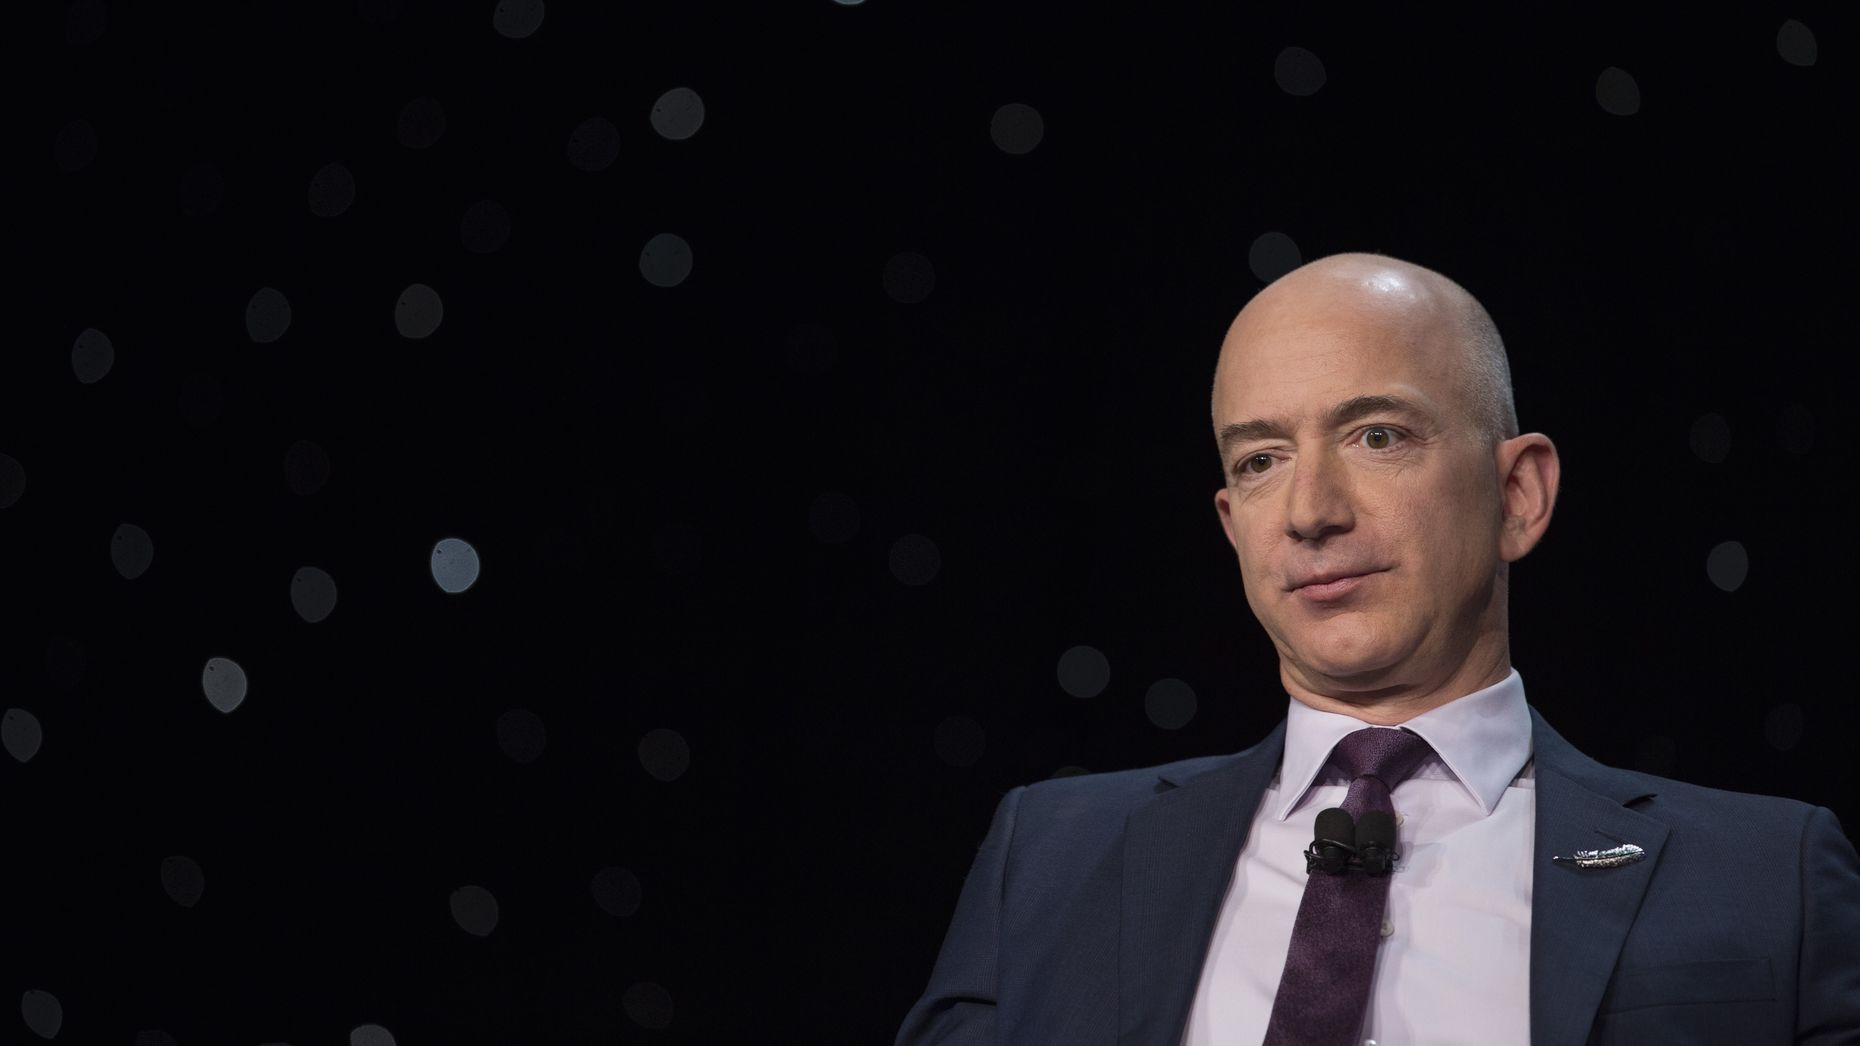 Amazon CEO Jeff Bezos. Photo by Bloomberg.